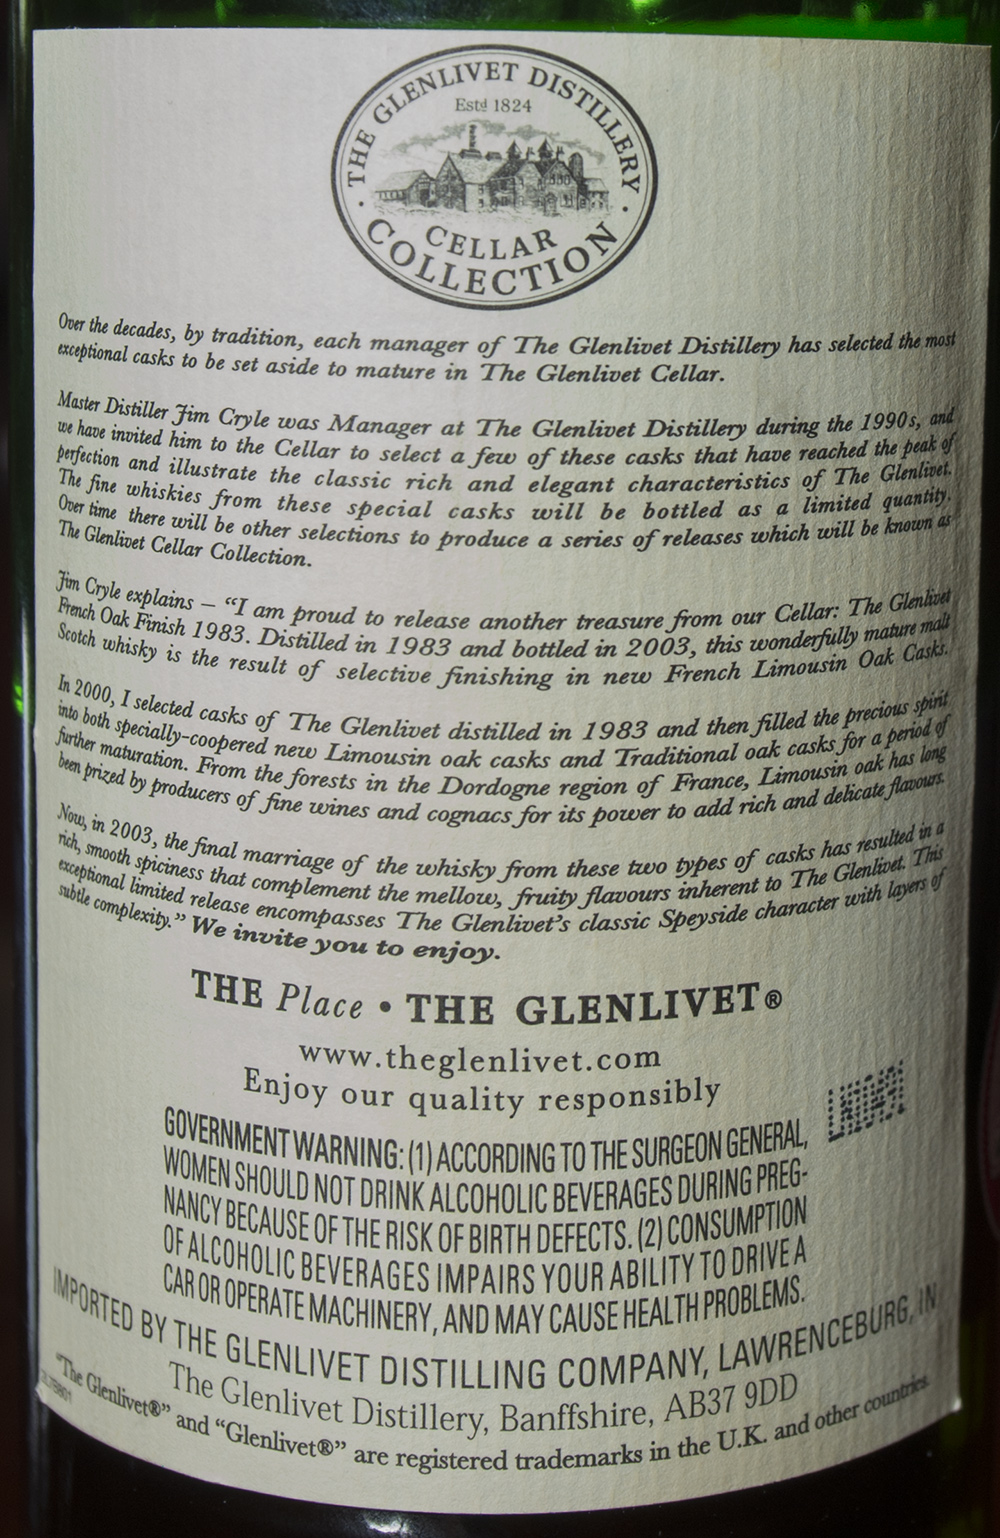 Billede: DSC_1024 The Glenlivet Cellar Collection French Oak reserver 1983 - back label.jpg